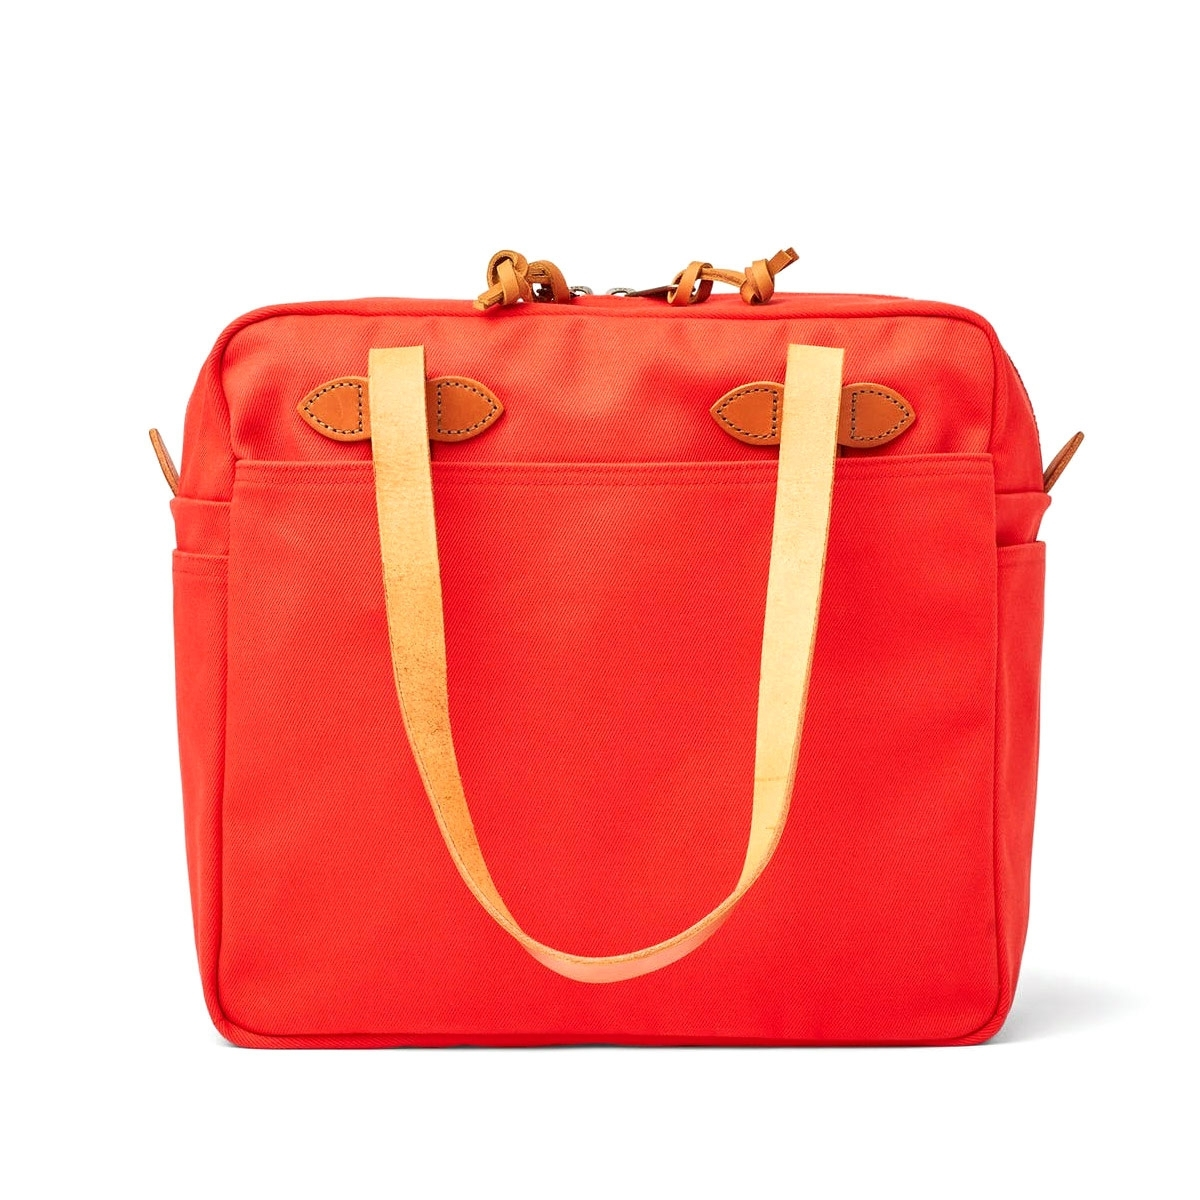 Filson Rugged Twill Tote Bag With Zipper 11070261-Mackinaw Red